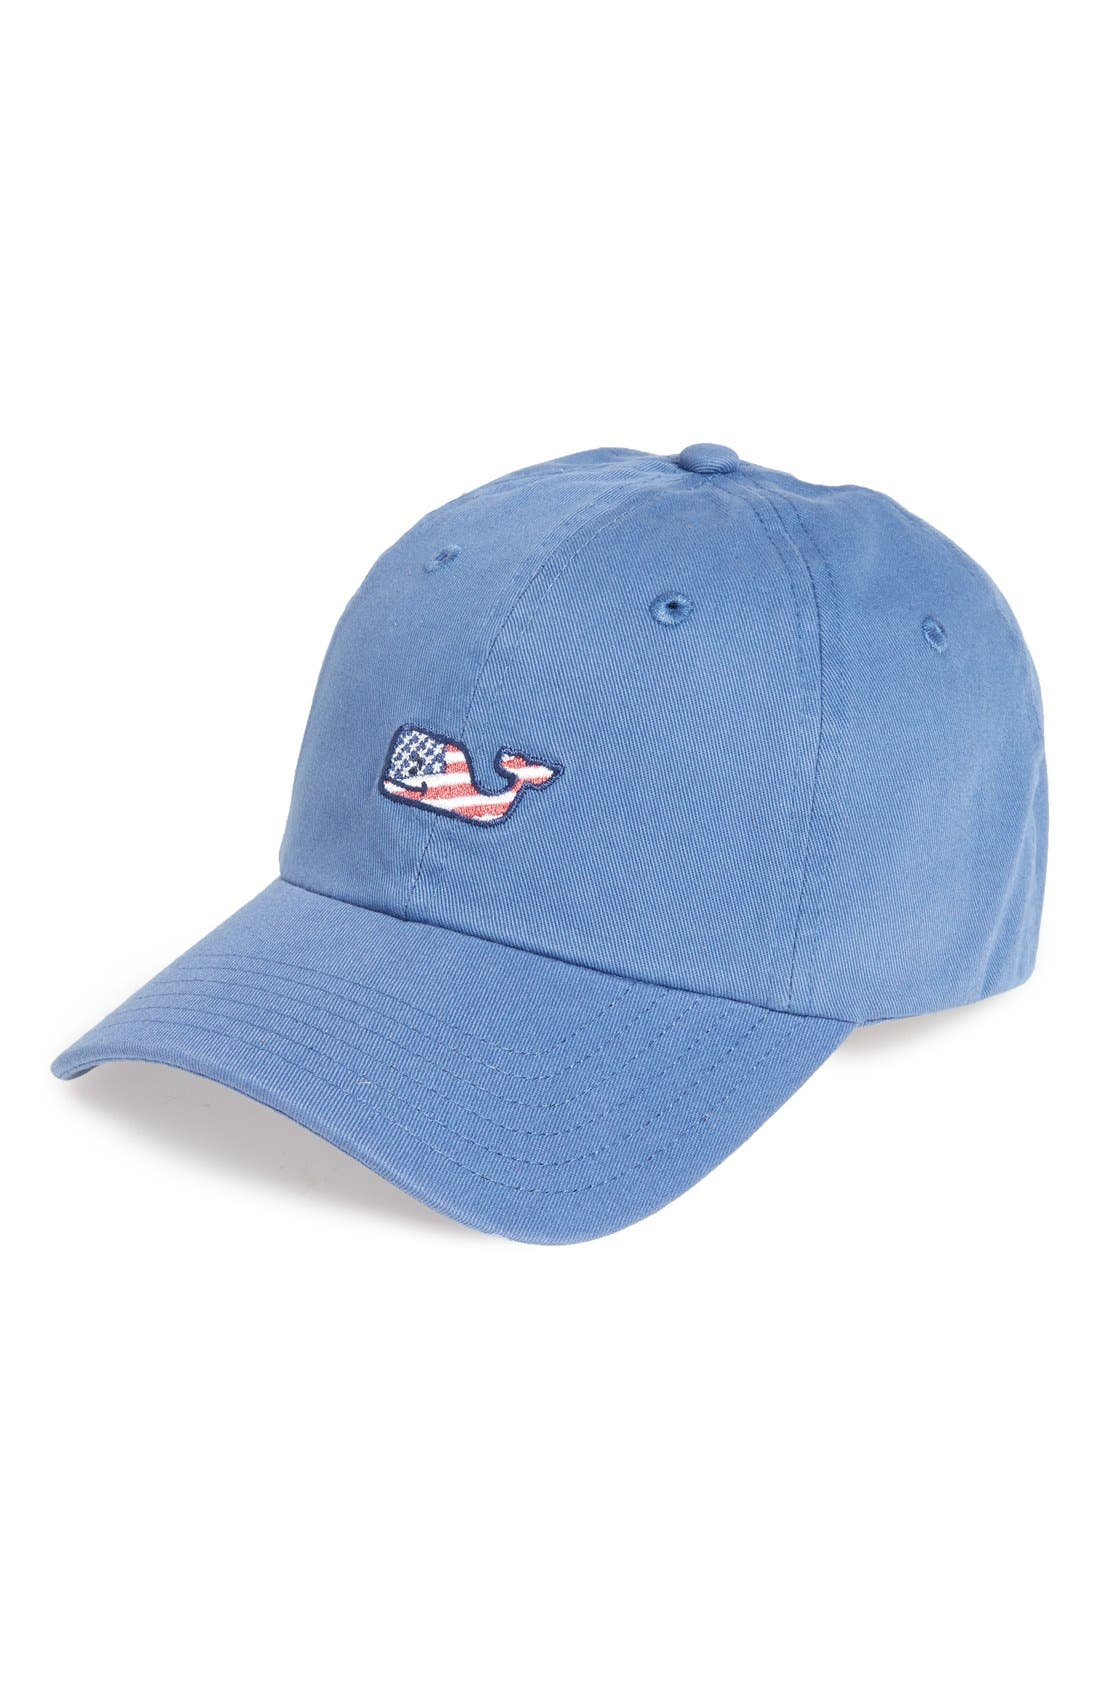 Alternate Image 1 Selected - vineyard vines Flag Whale Logo Baseball Cap